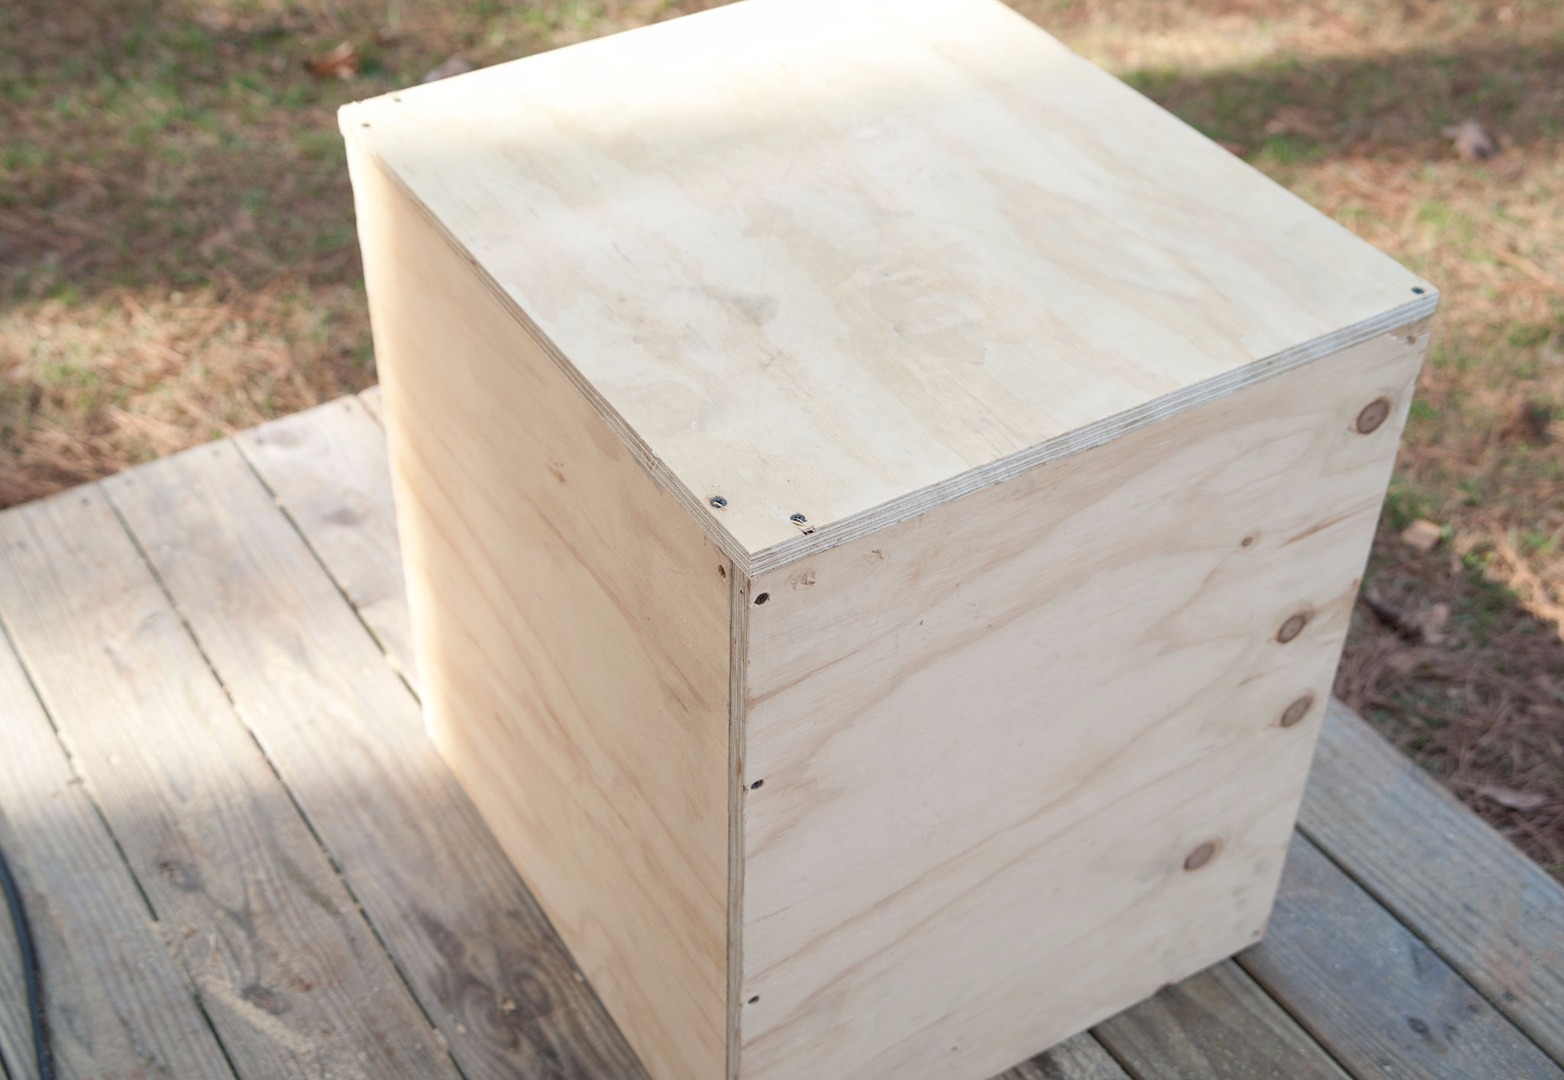 Picture of Cut Wood Sides and Bottom